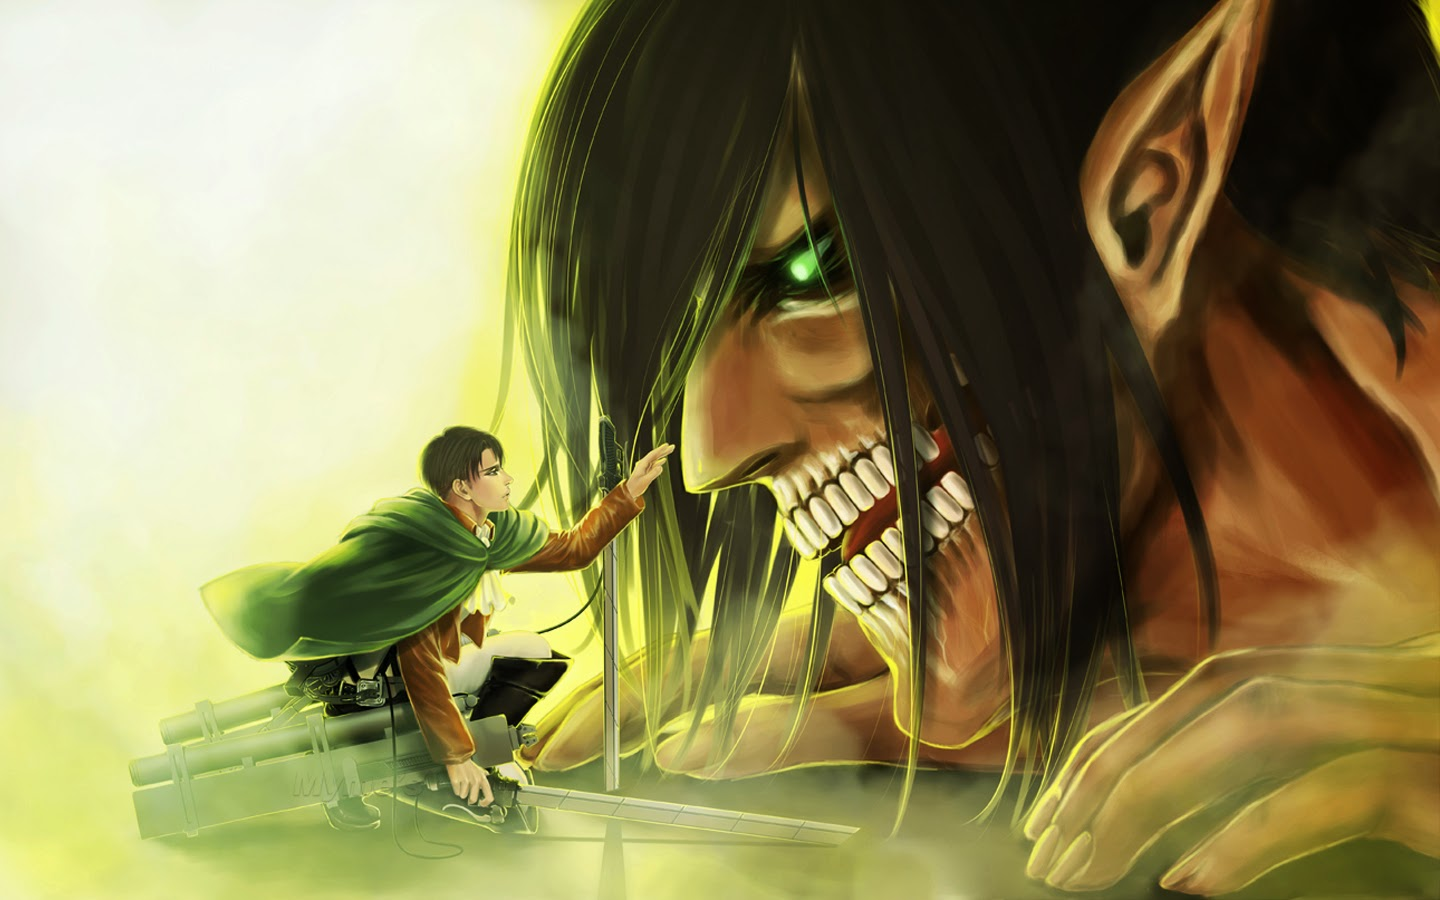 attack on titan levi x eren